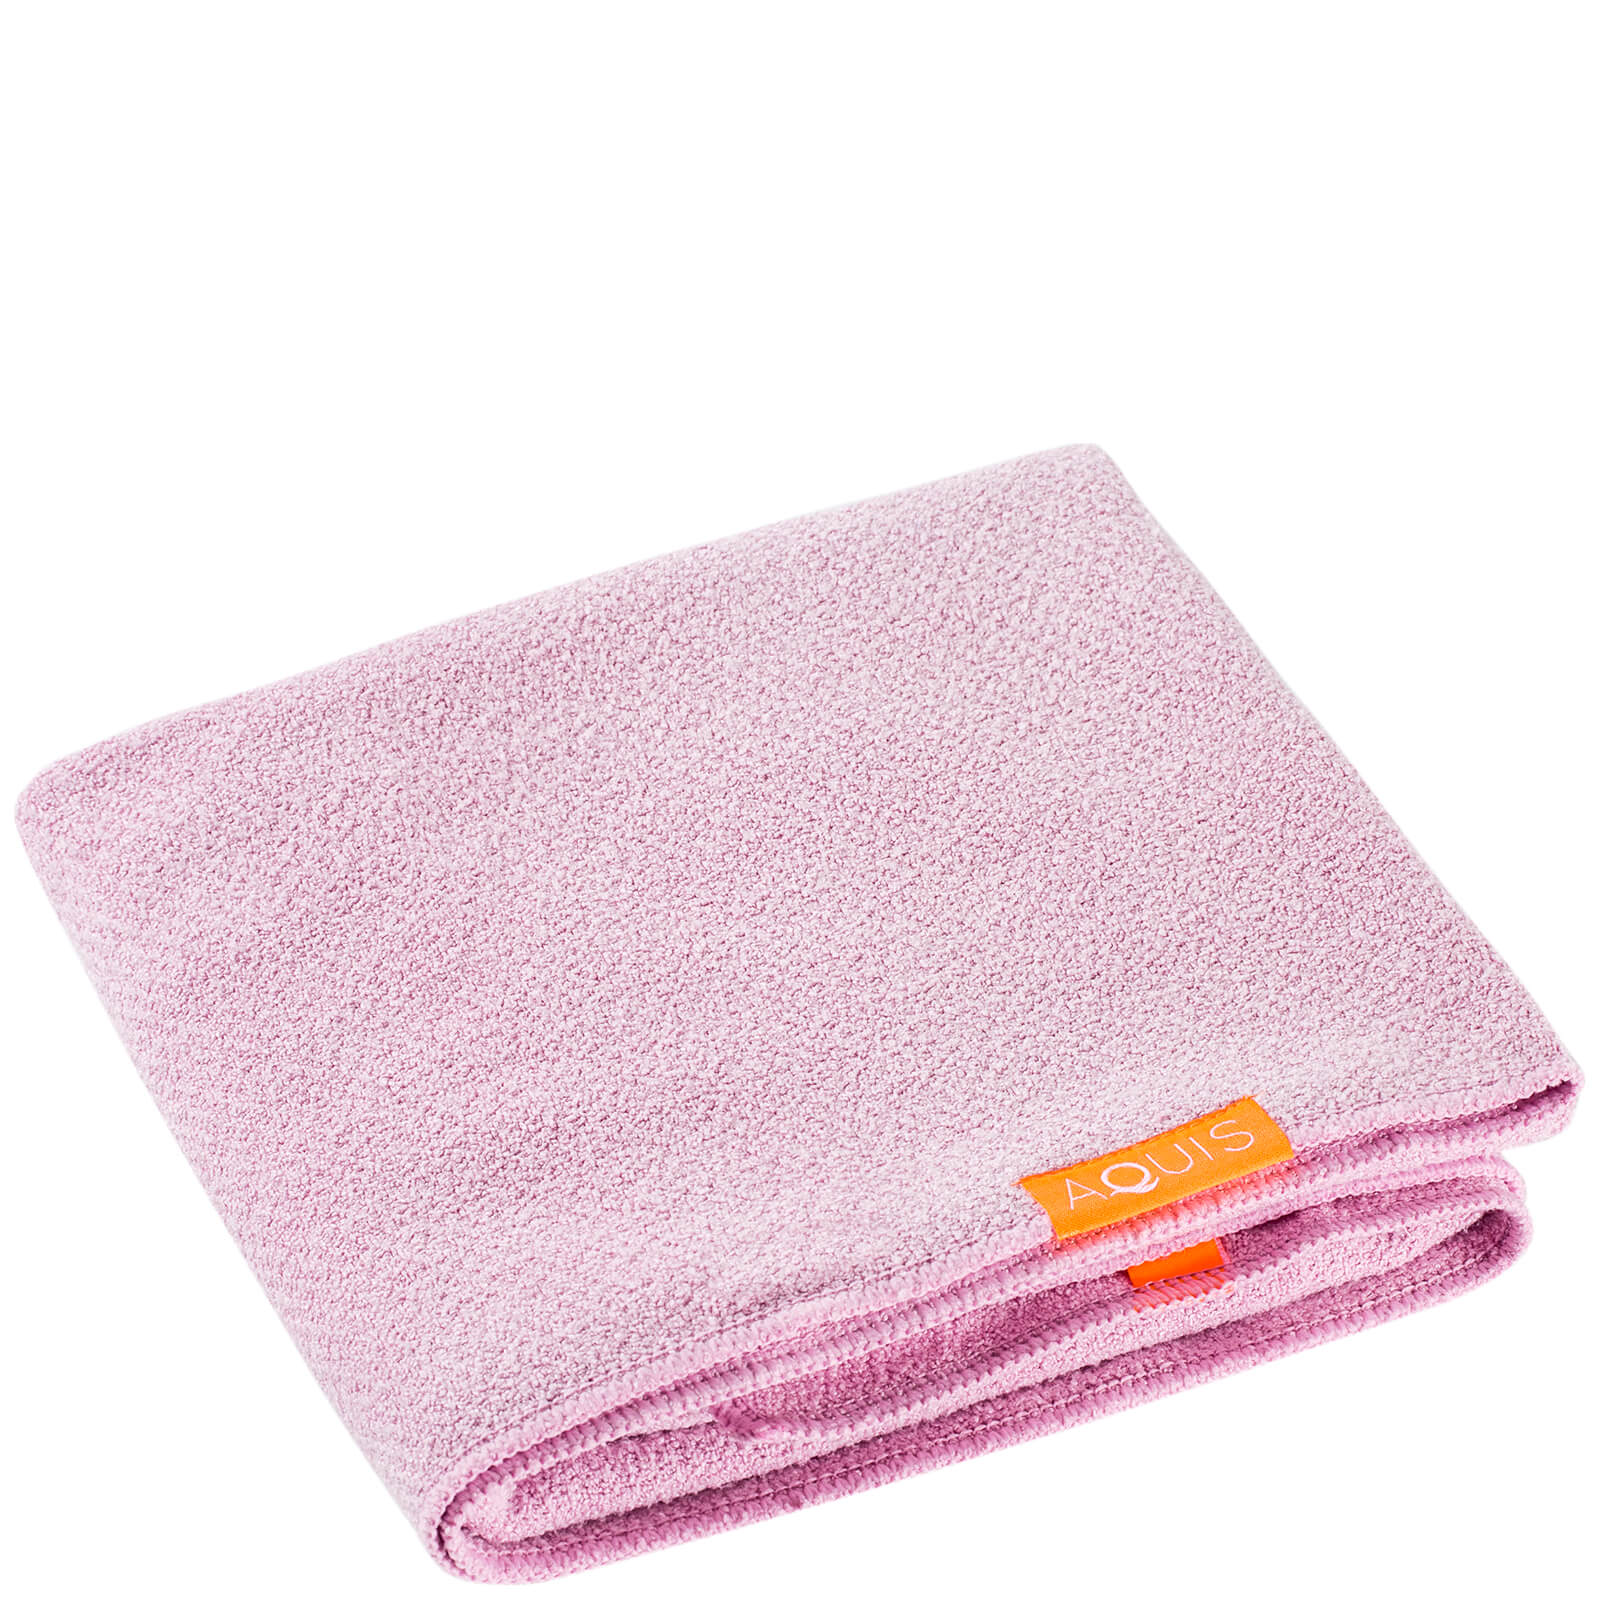 Aquis Hair Towel Lisse Luxe Desert Rose